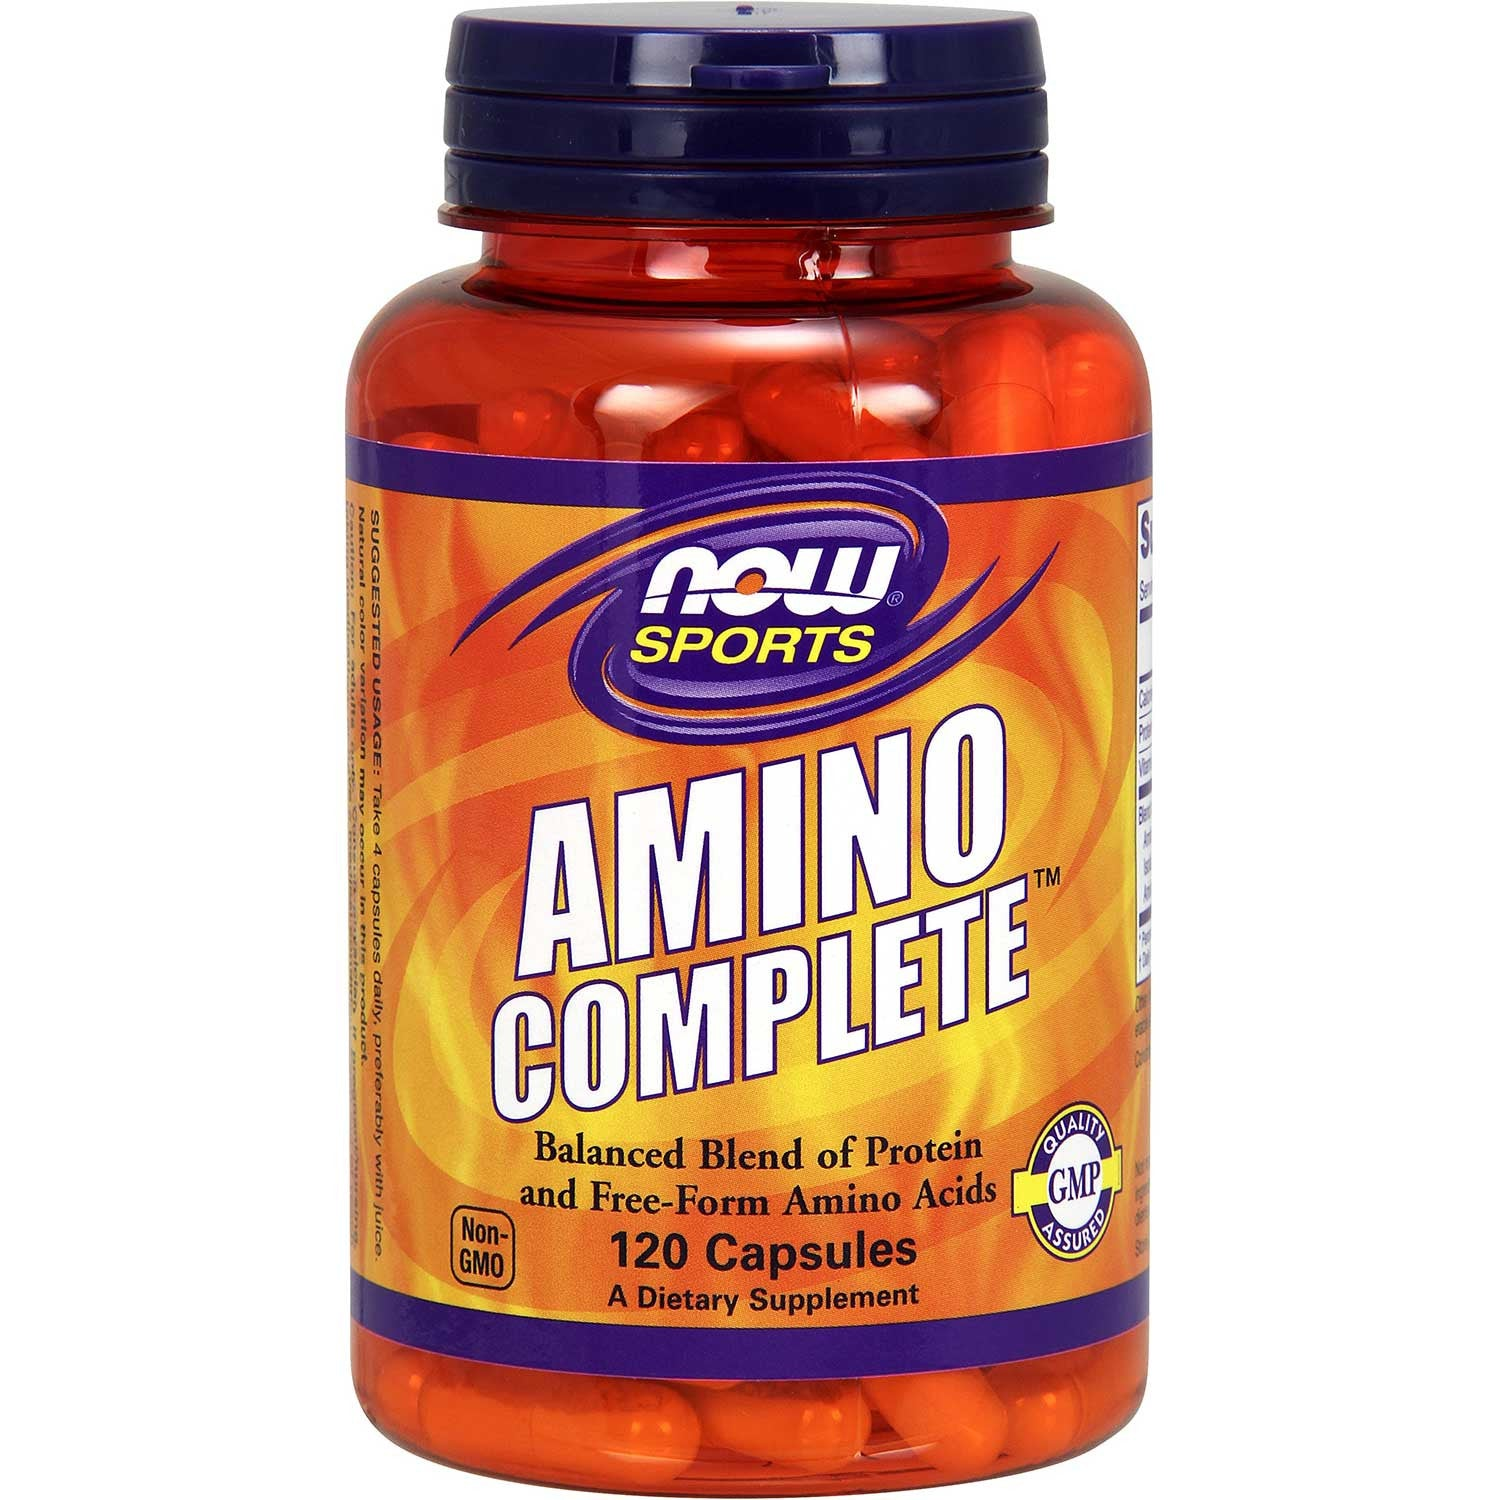 NOW Amino Complete Balanced Blends of Amino Acids, 120 caps.-NaturesWisdom